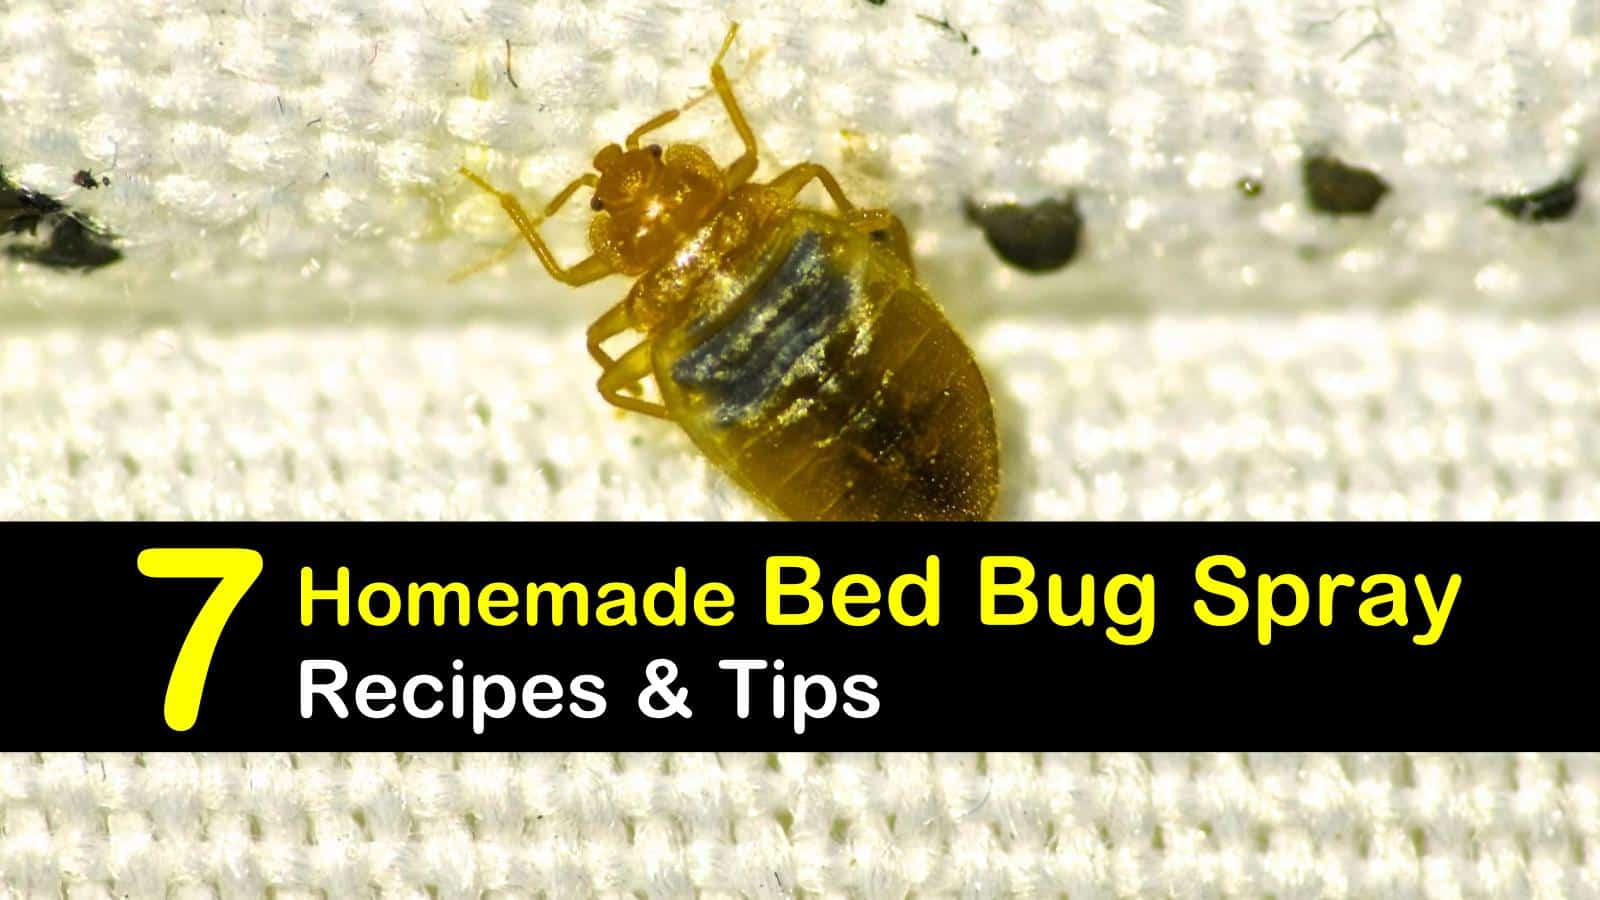 Getting Rid Of Bed Bugs 7 Homemade Bed Bug Spray Recipes